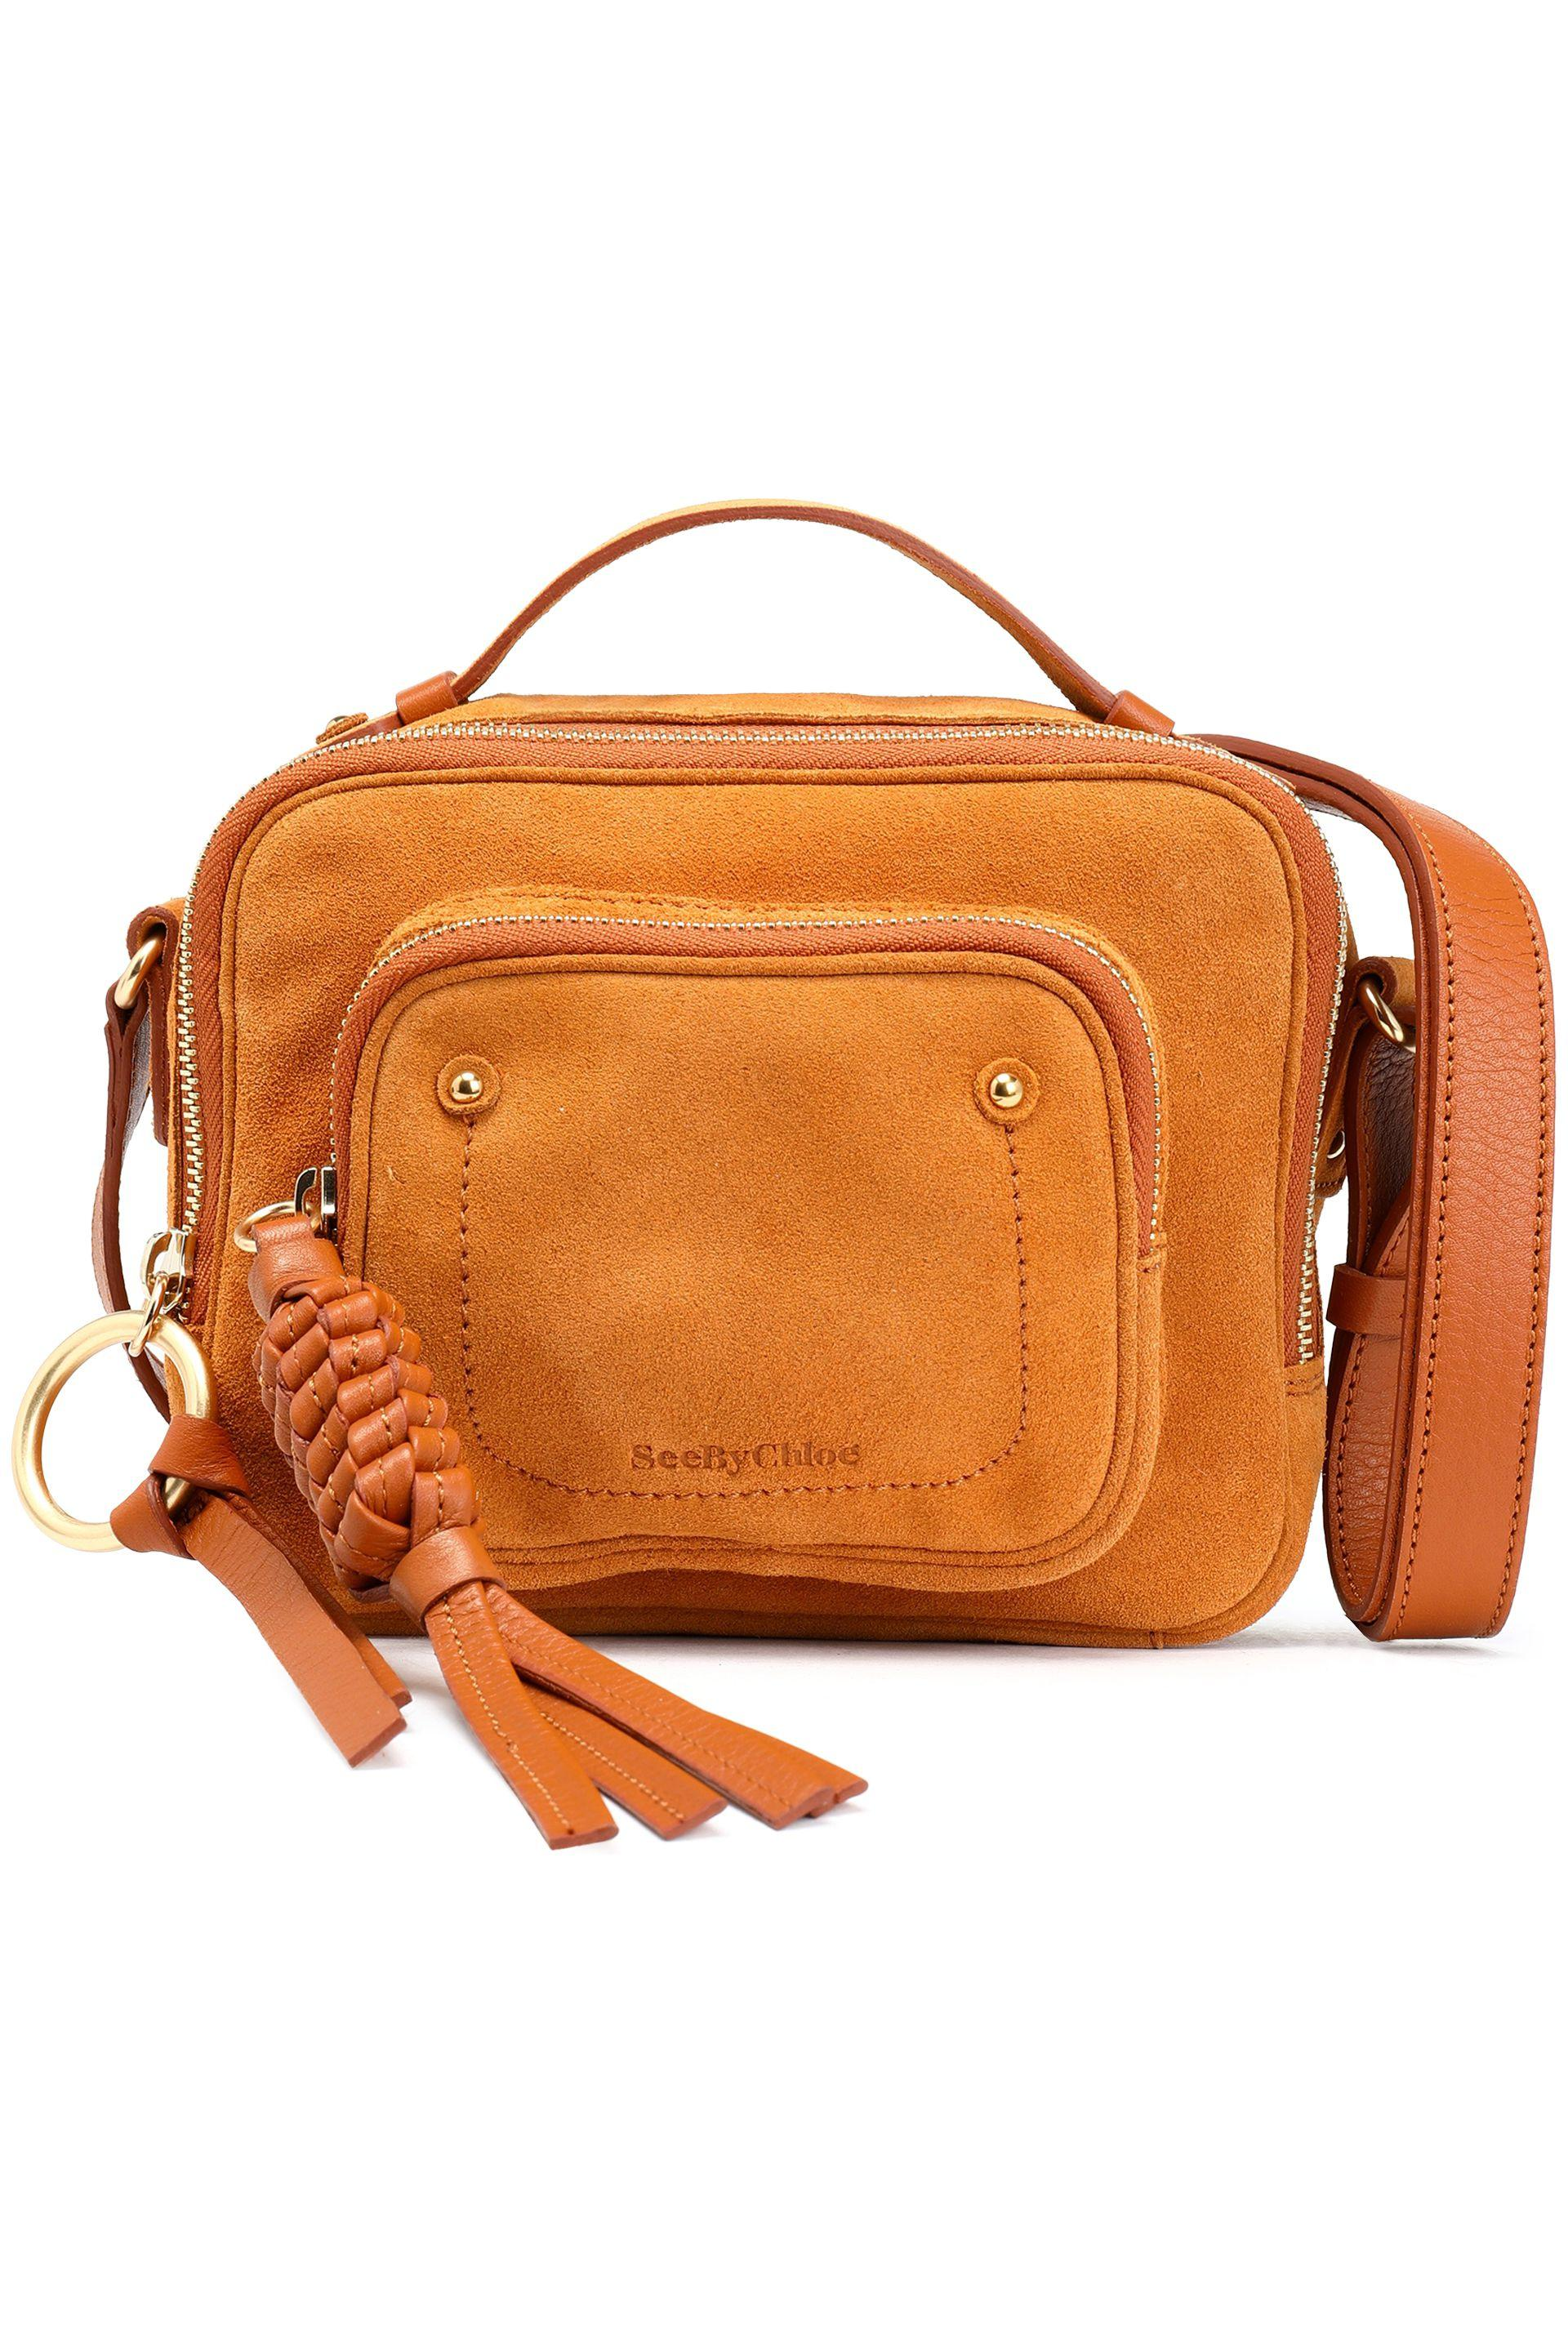 fbf06132 See By Chloé Orange See By Chloé Woman Patti Leather-trimmed Suede Shoulder  Bag Camel